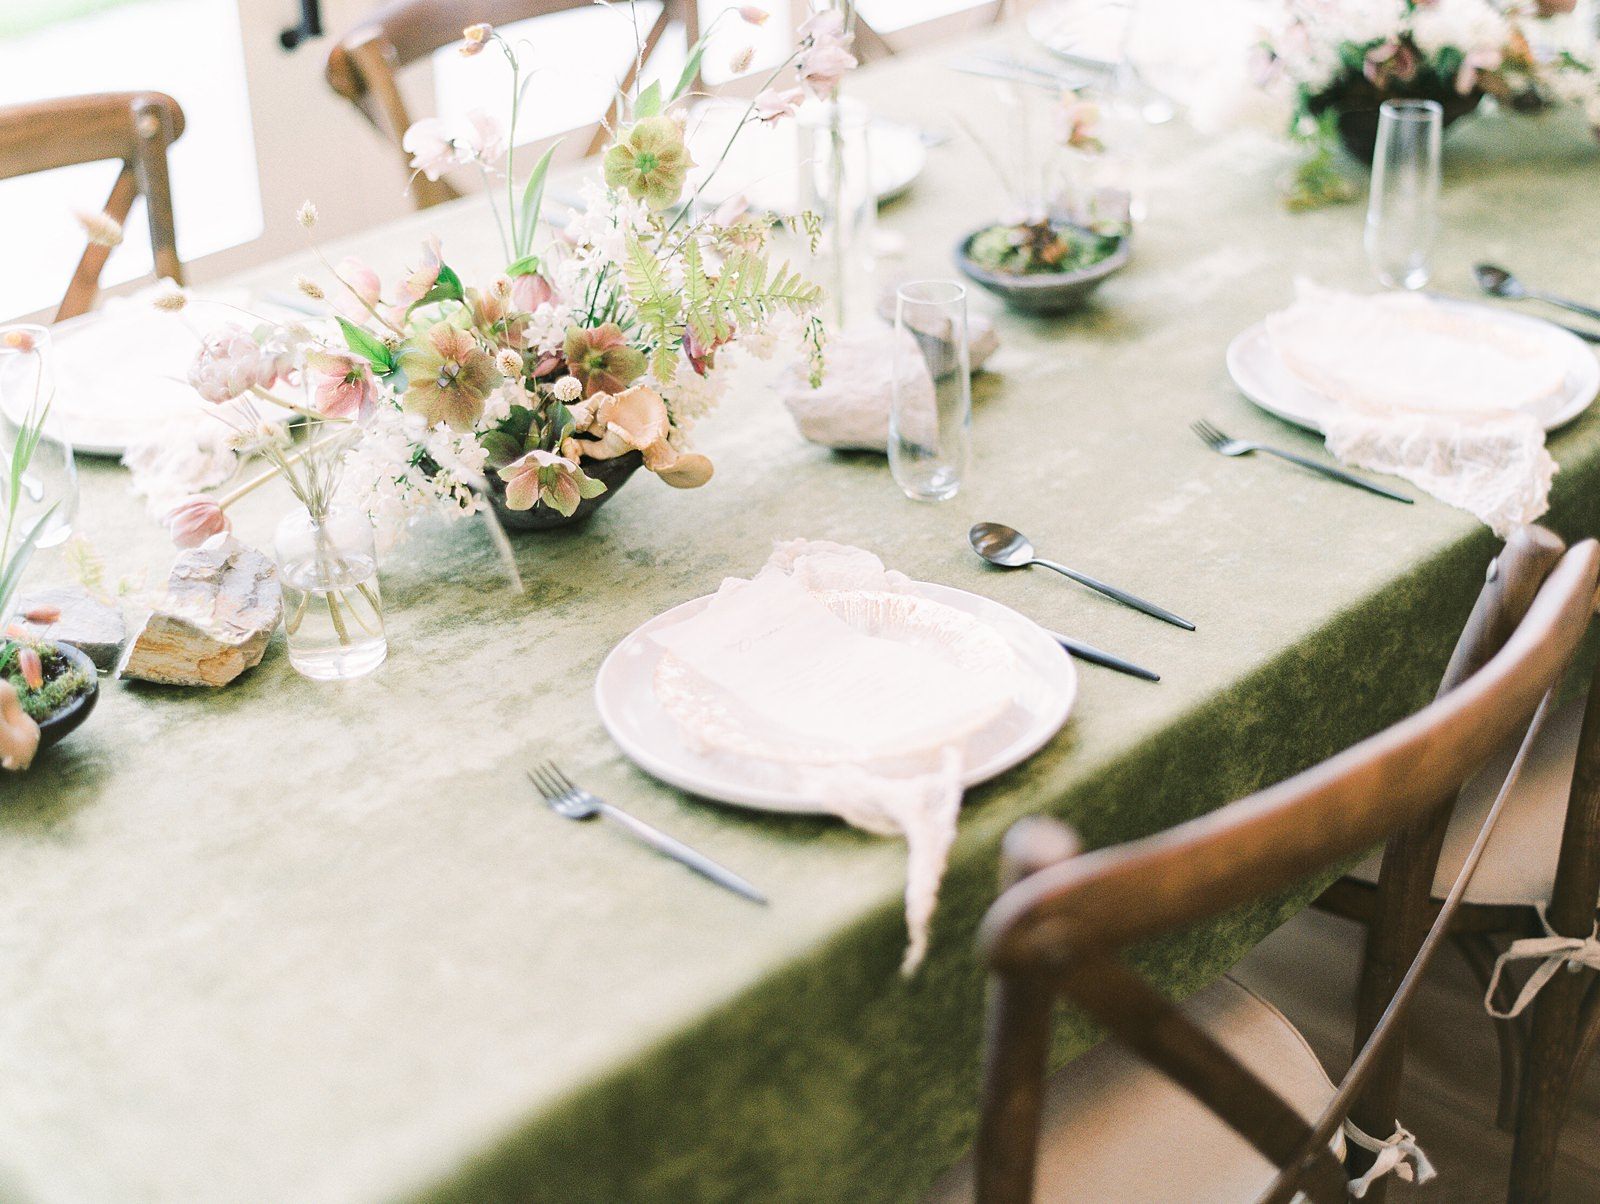 Heber Valley Natural Organic Wedding Inspiration at River Bottoms Ranch, Utah wedding film photography, green tablecloth wedding flower centerpiece with white place settings